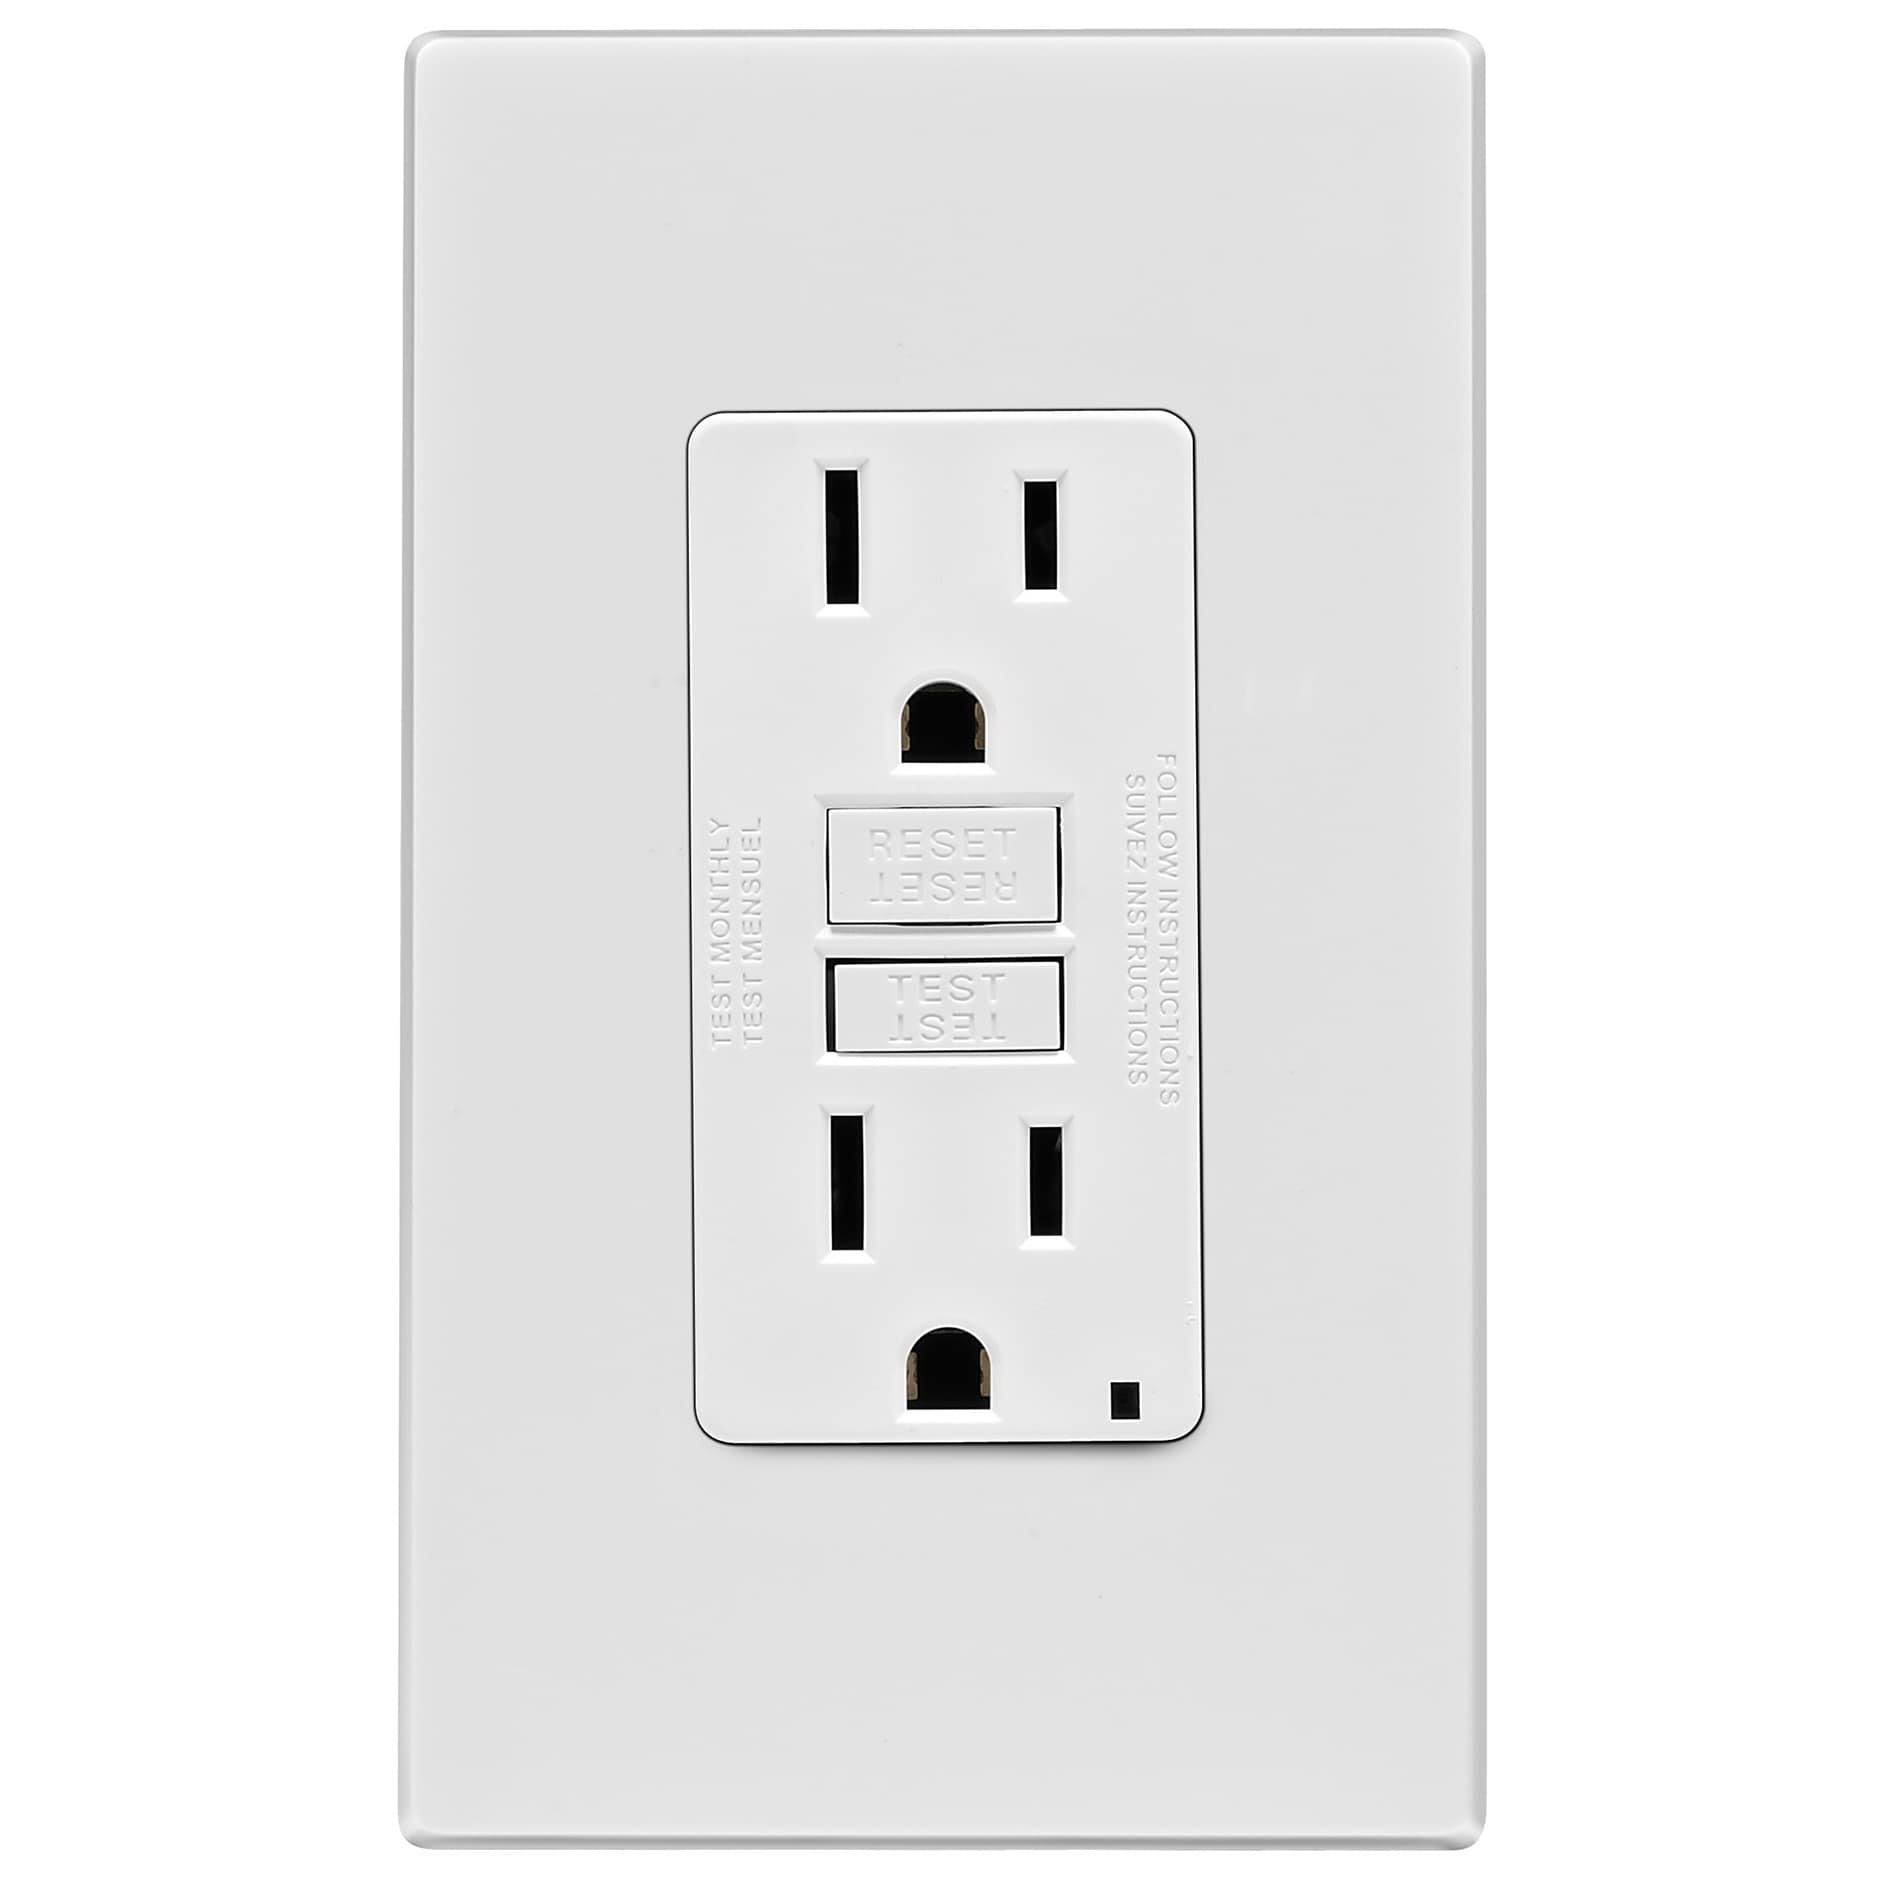 Leviton GFCI Receptacle With Plate - 15A, 125V